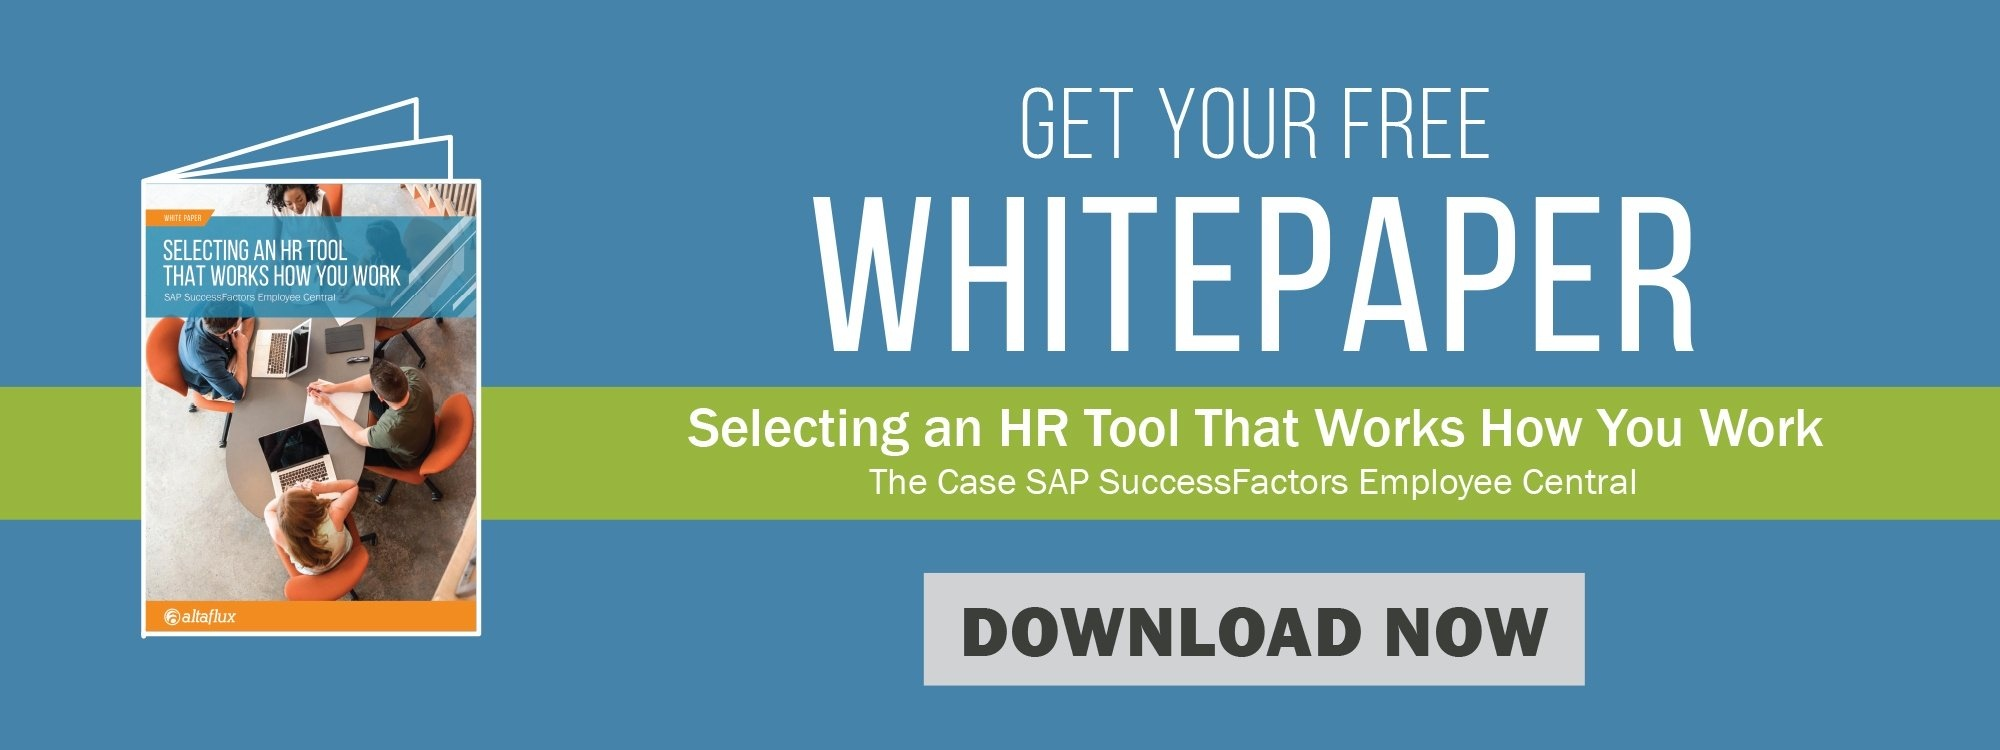 AltaFlux Whitepaper Selecting an HR Tool That Works How You Work